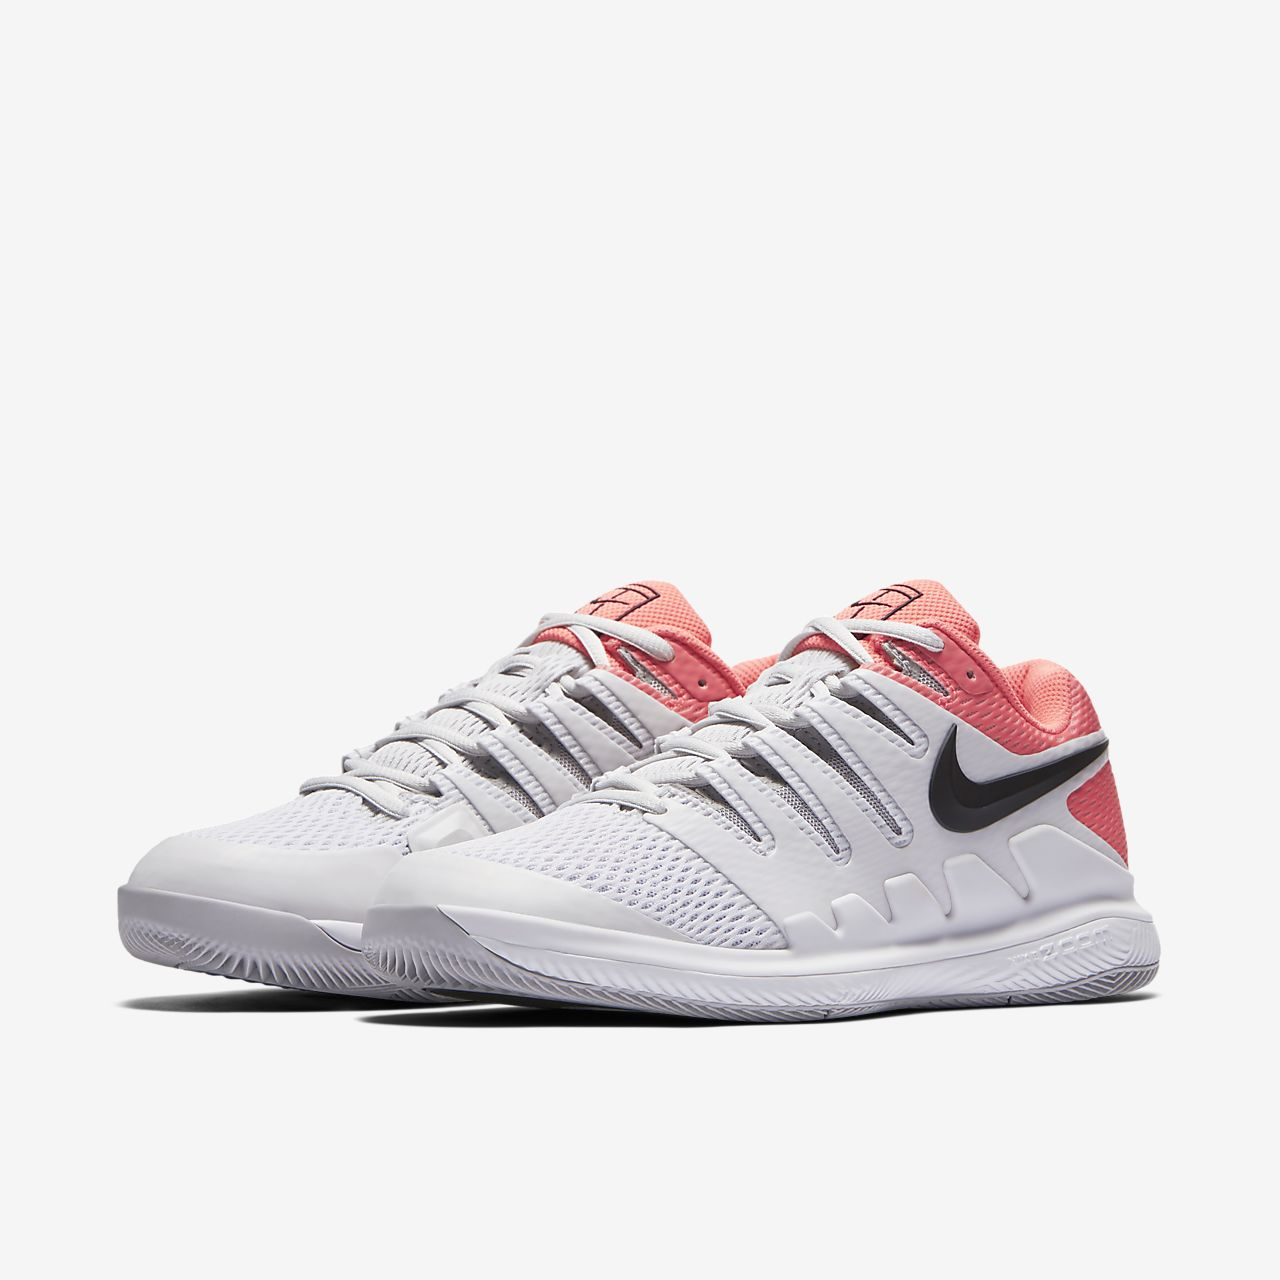 low priced e874e 1895c Nike Air Zoom Vapor X HC - White - Tennis Scanner